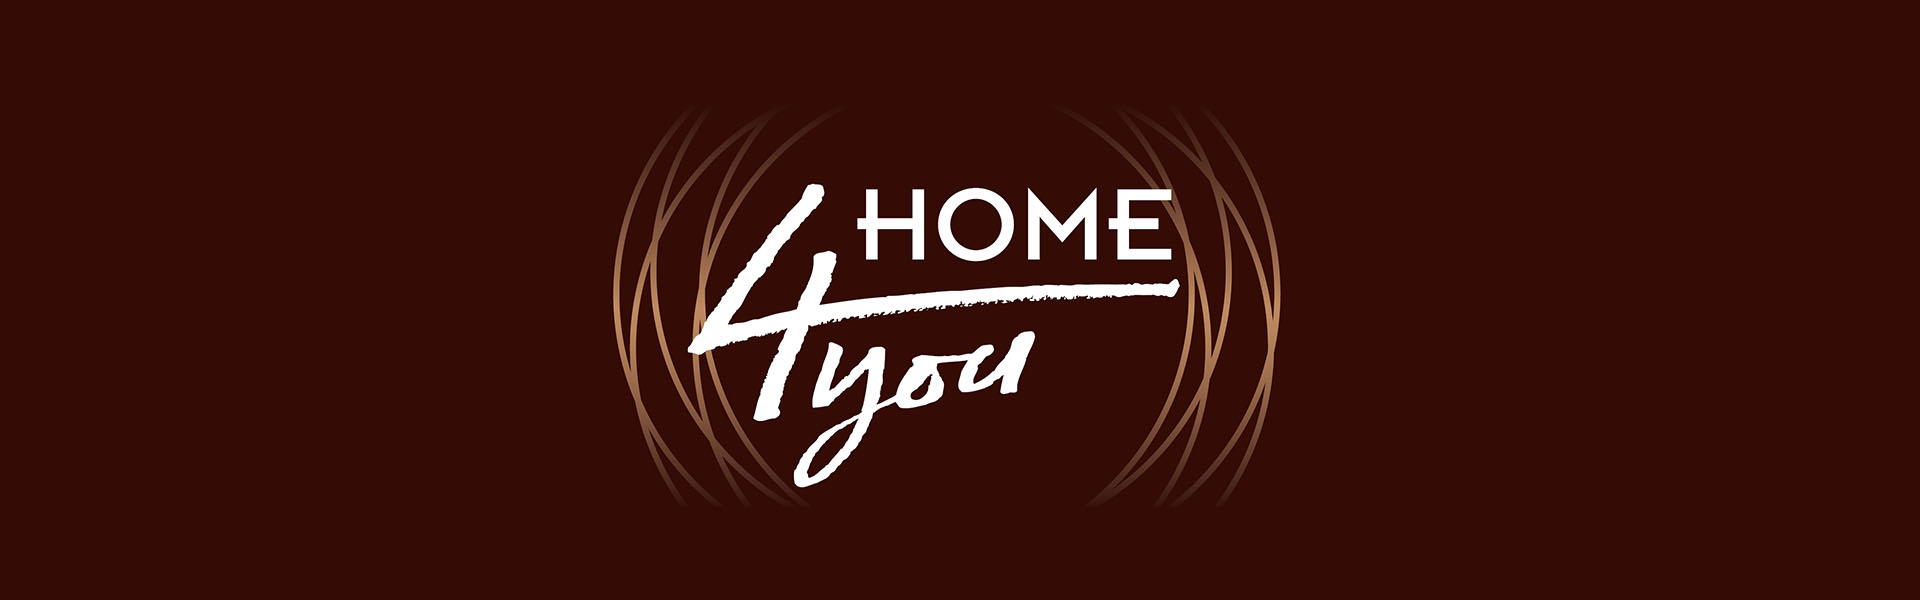 2- tooli komplekt Turin, pruun/hall                             Home4You